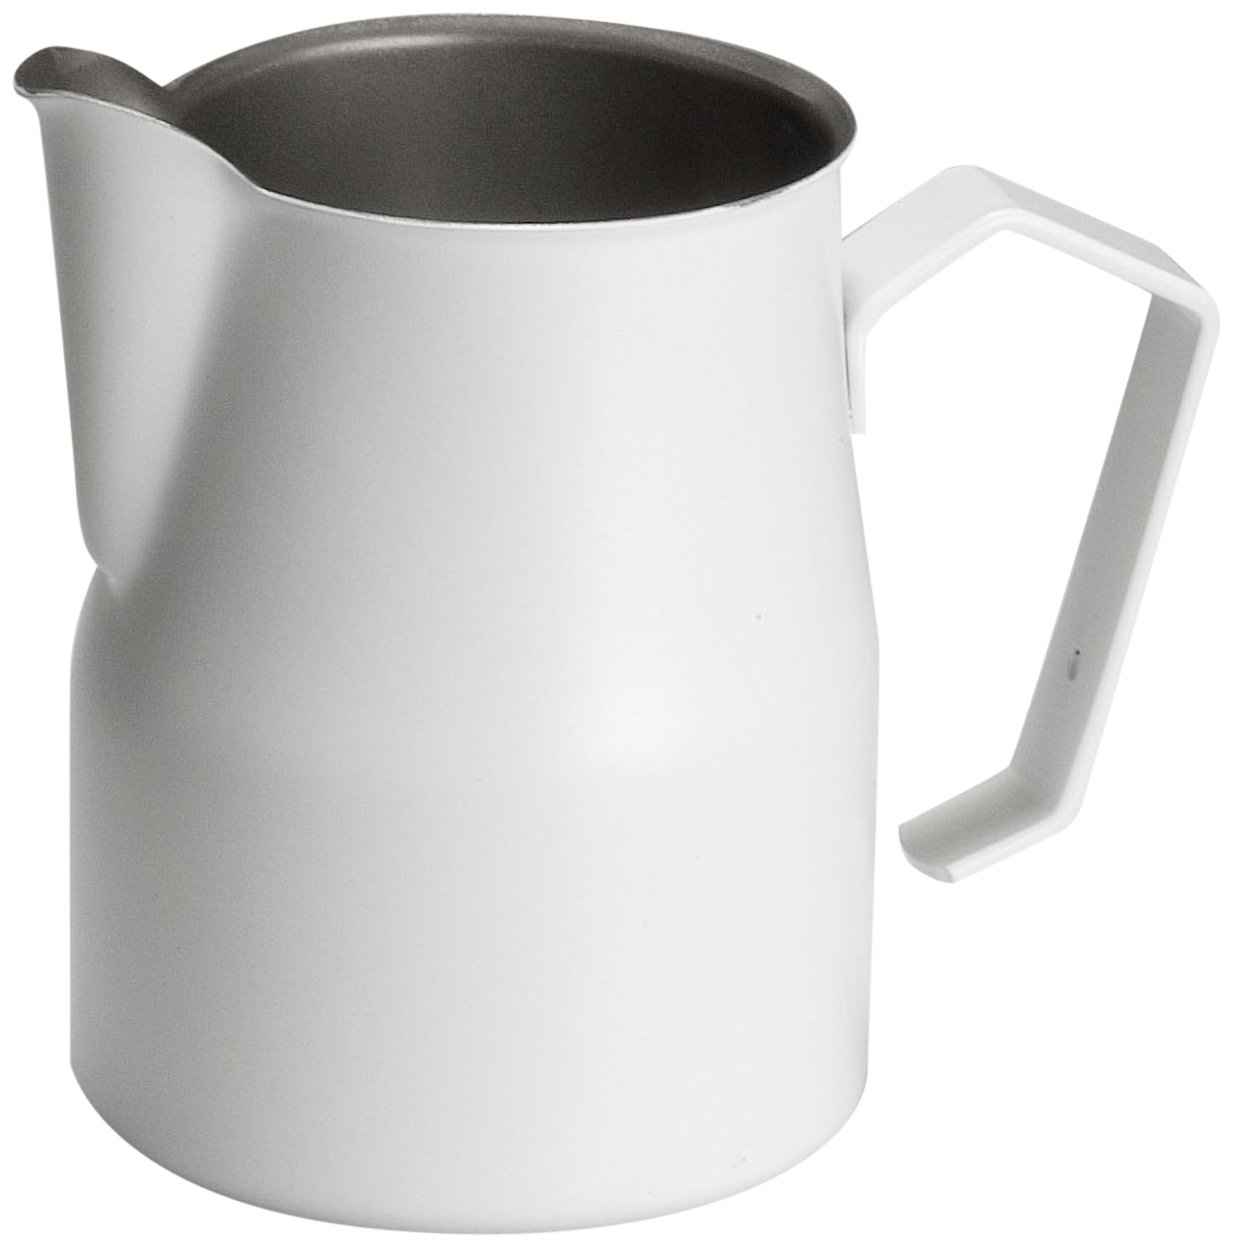 Motta Stainless Steel Professional Milk Pitcher/Jugs, 11.8 Fluid Ounce, Black Tomson Inc 02535/00